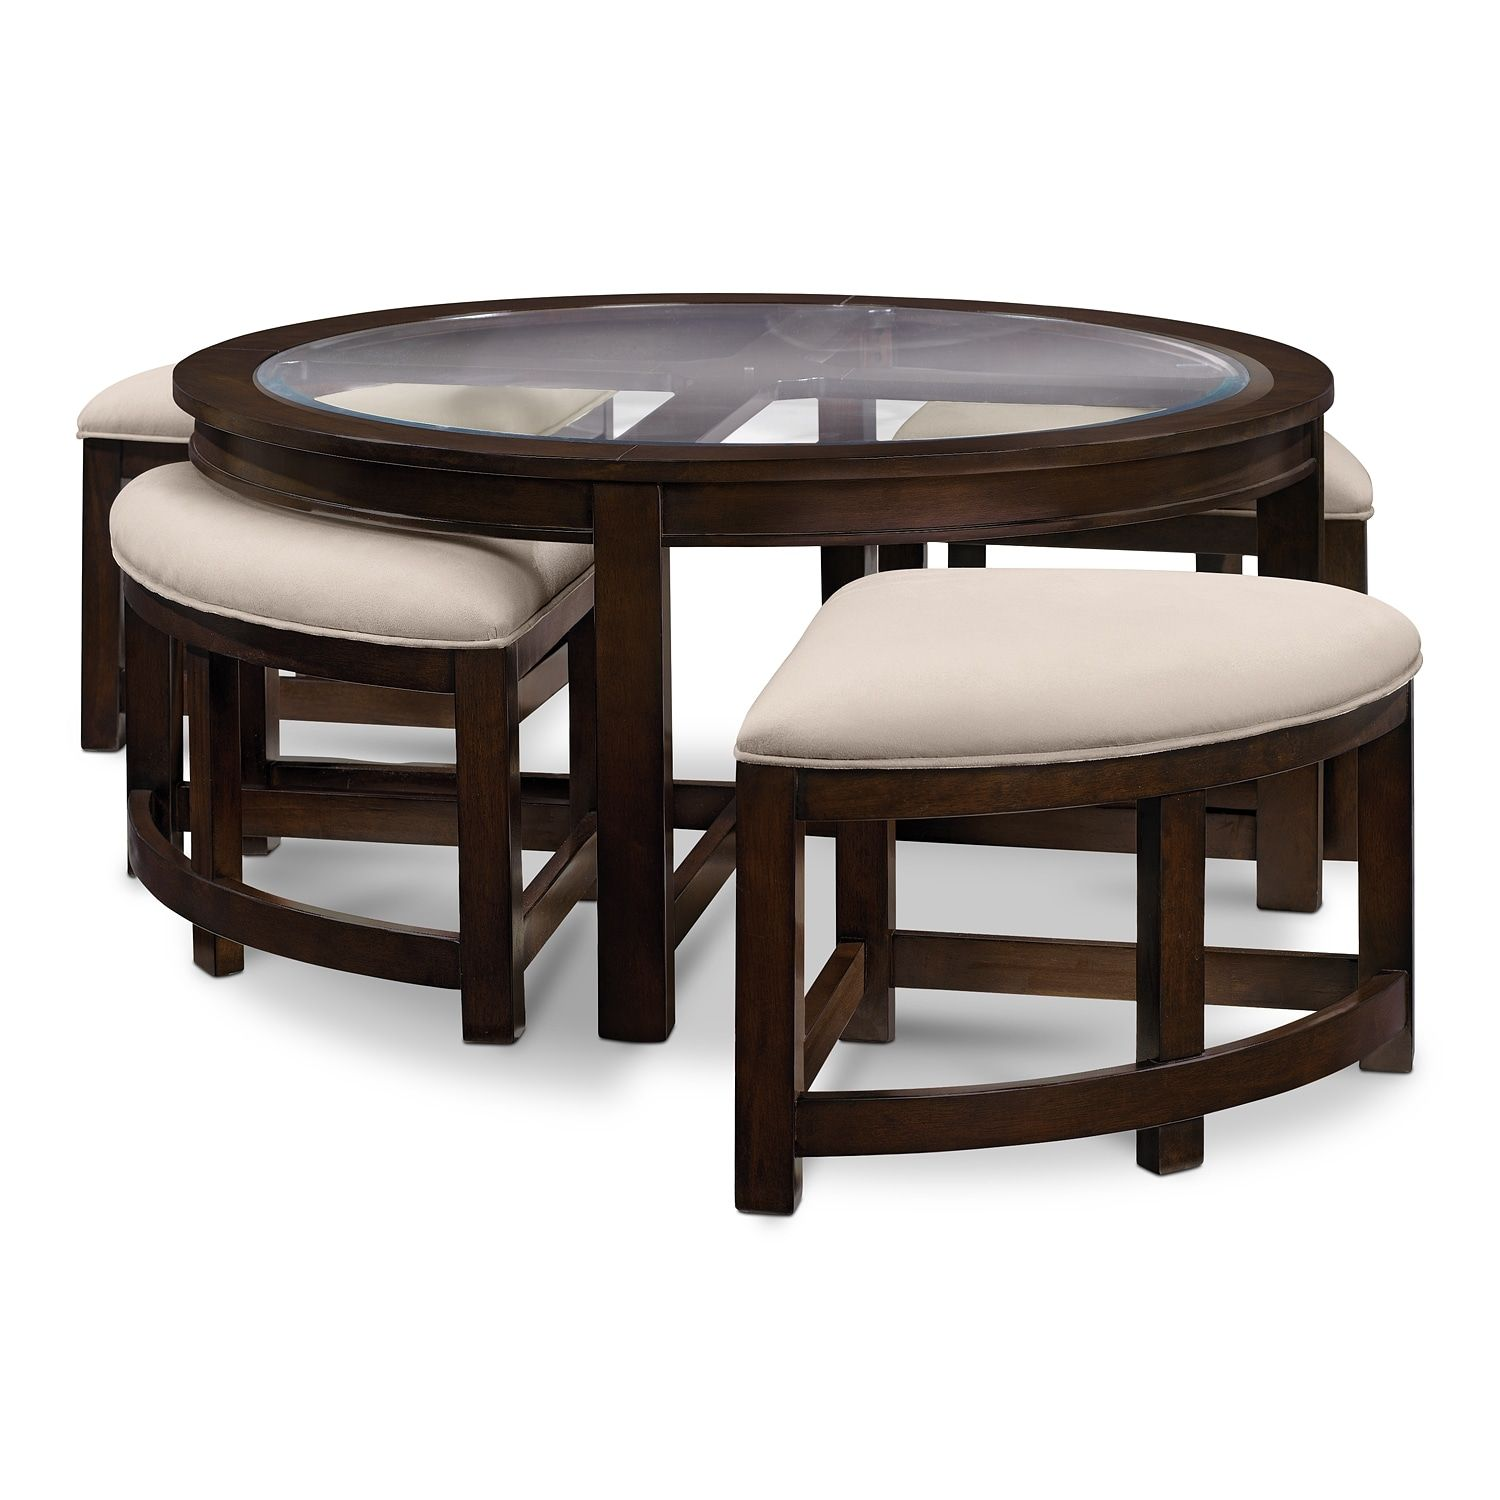 Four Corners Coffee Table With 4 Benches In 2021 Value City Furniture Coffee Table City Furniture [ 1500 x 1500 Pixel ]